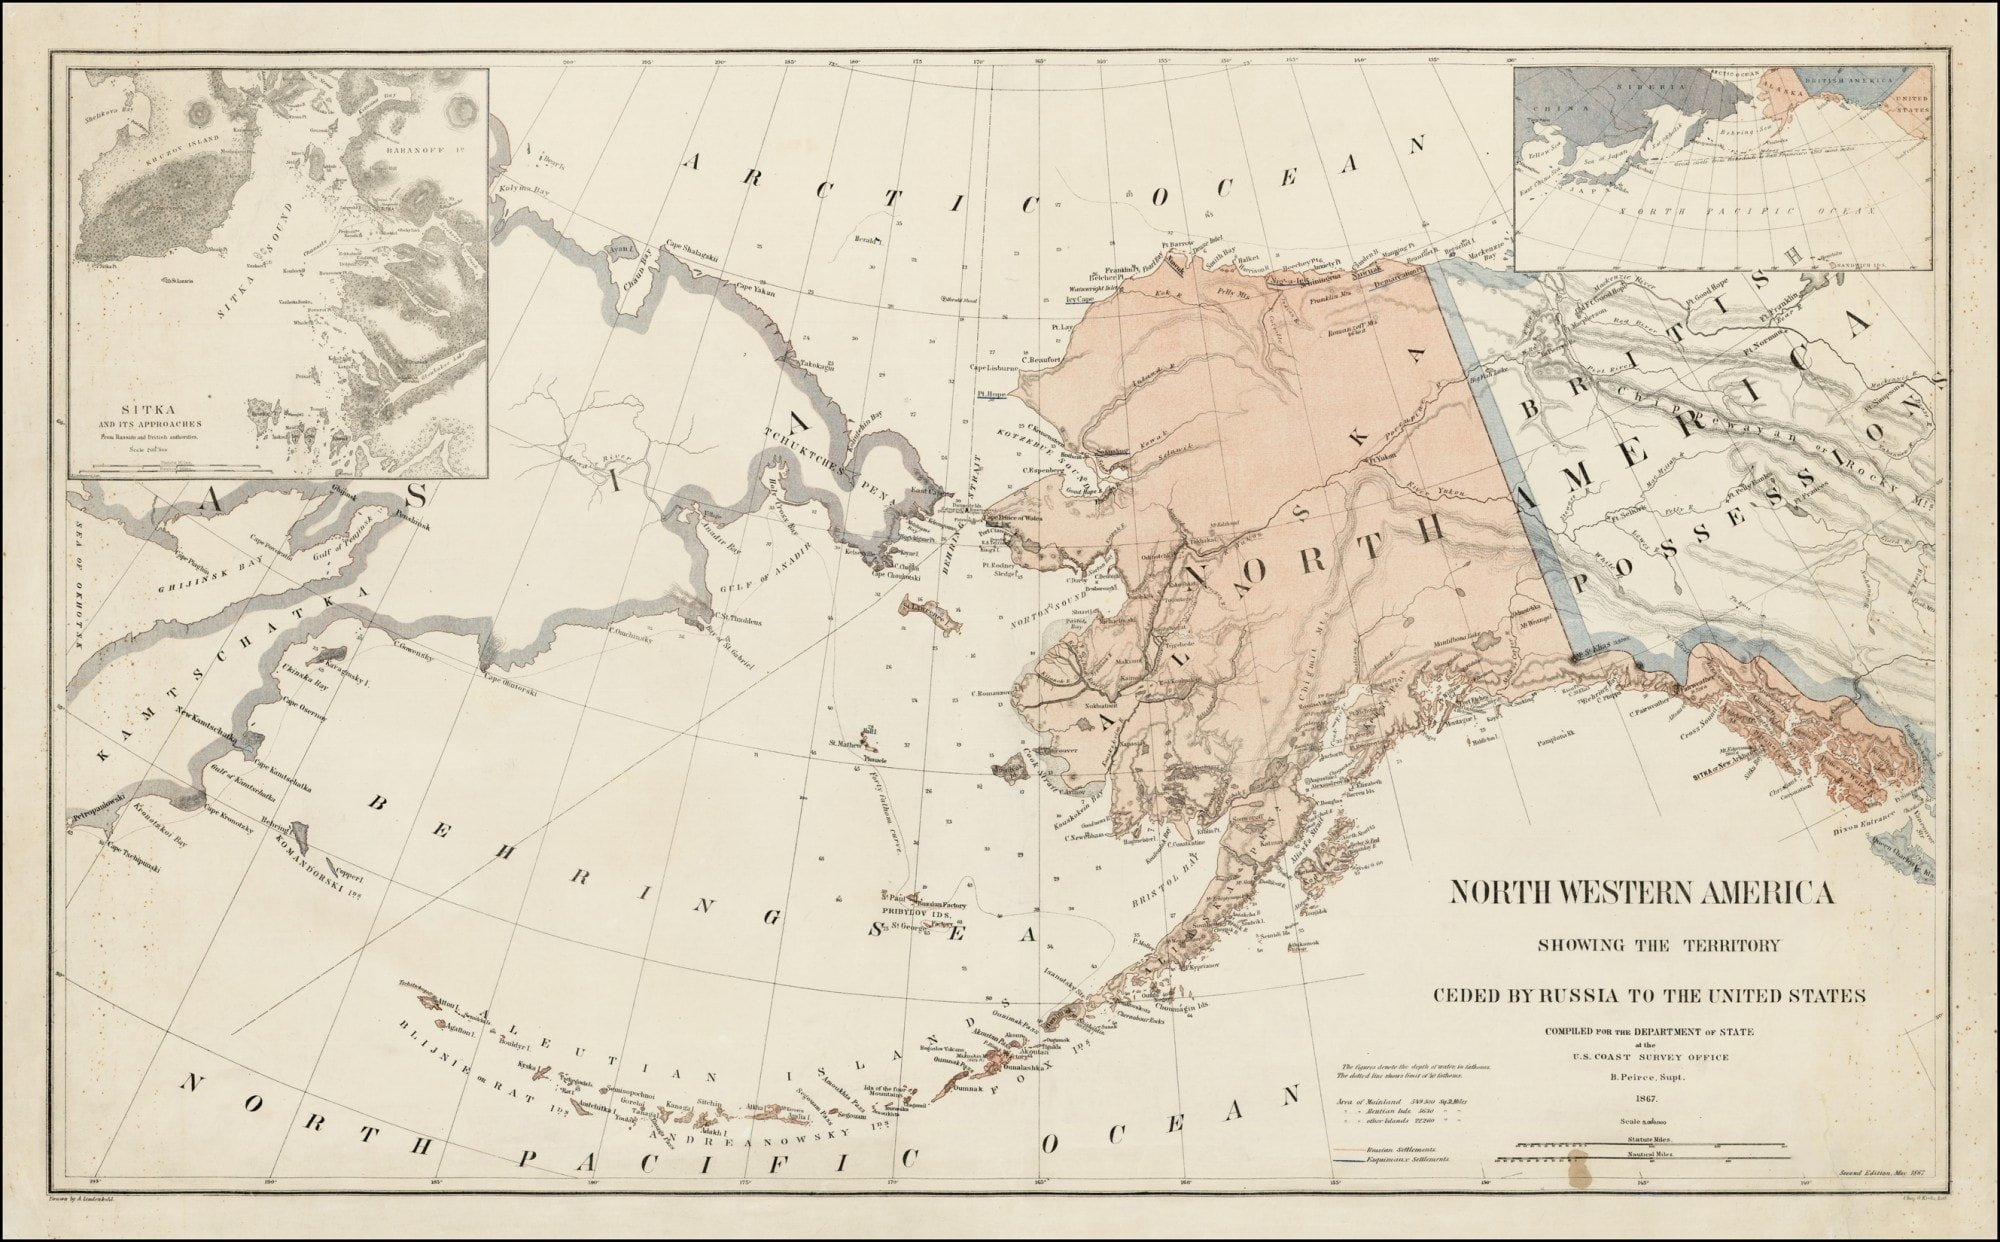 A seminal Alaska map Rare Antique Maps